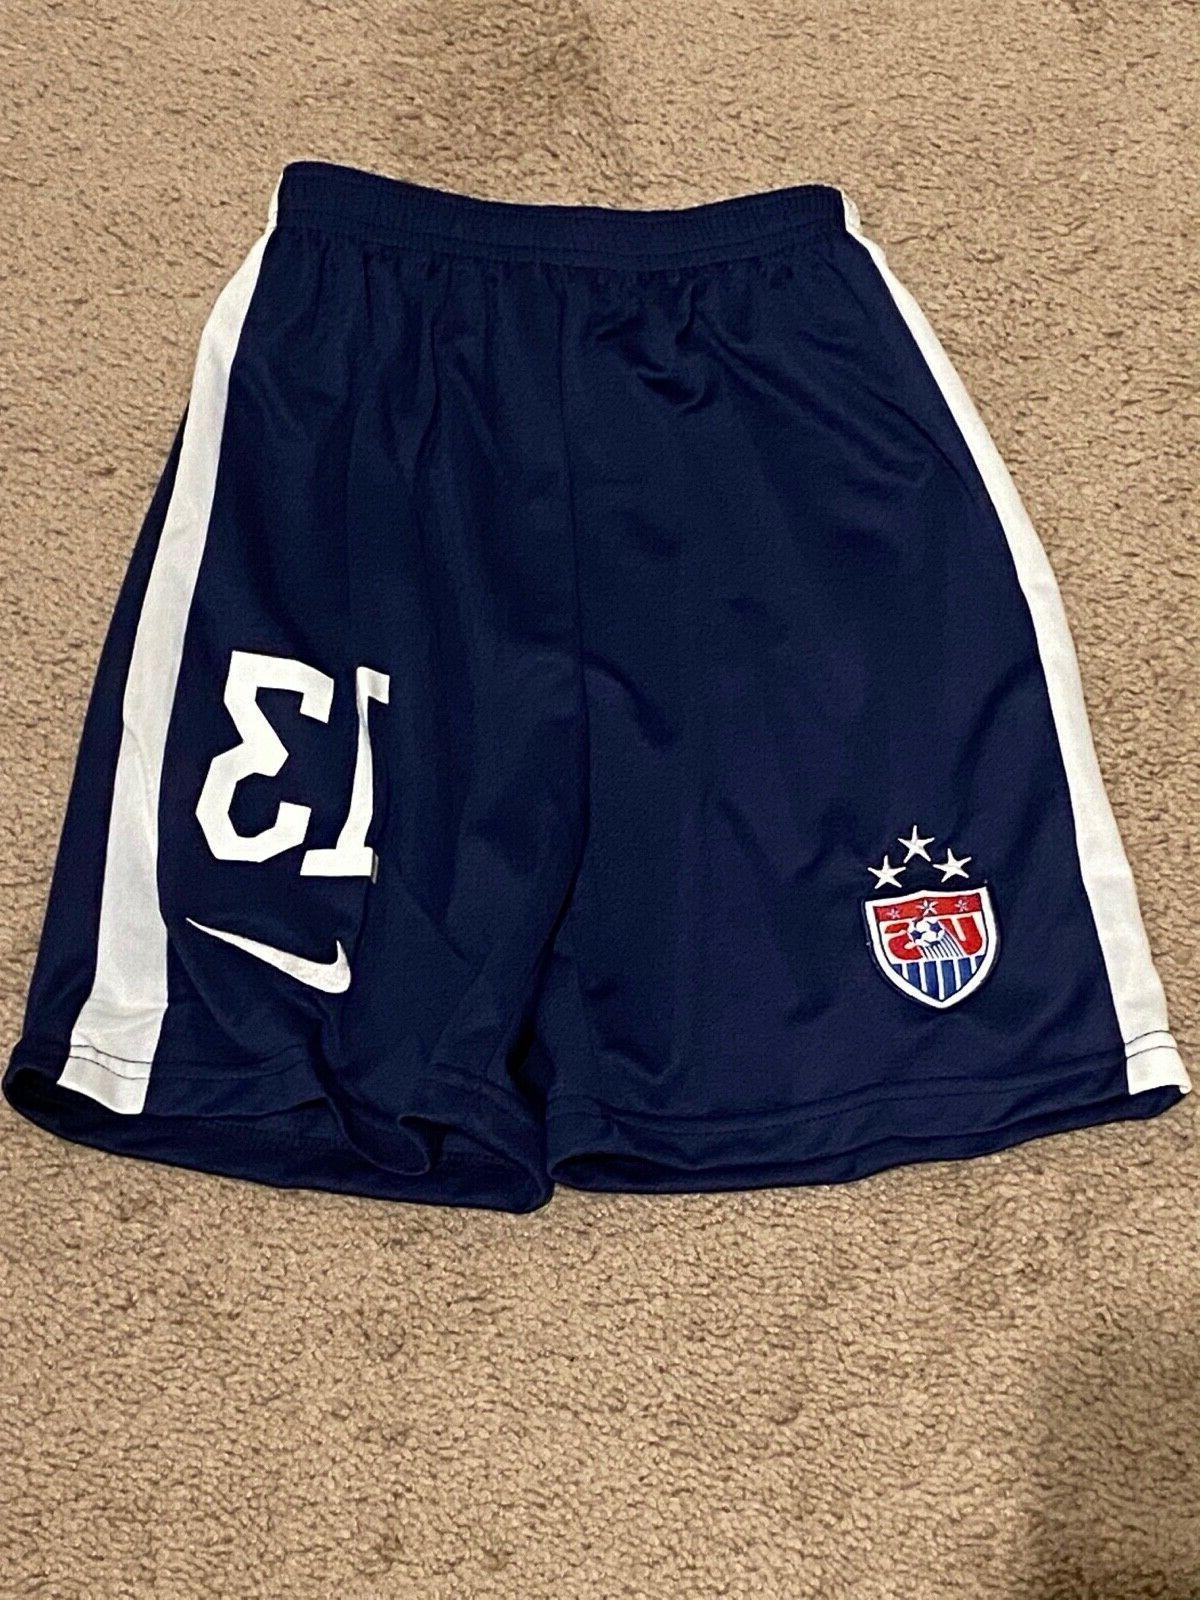 New US Soccer 2015 World Cup Jersey Youth 22 Nike Alex Morgan